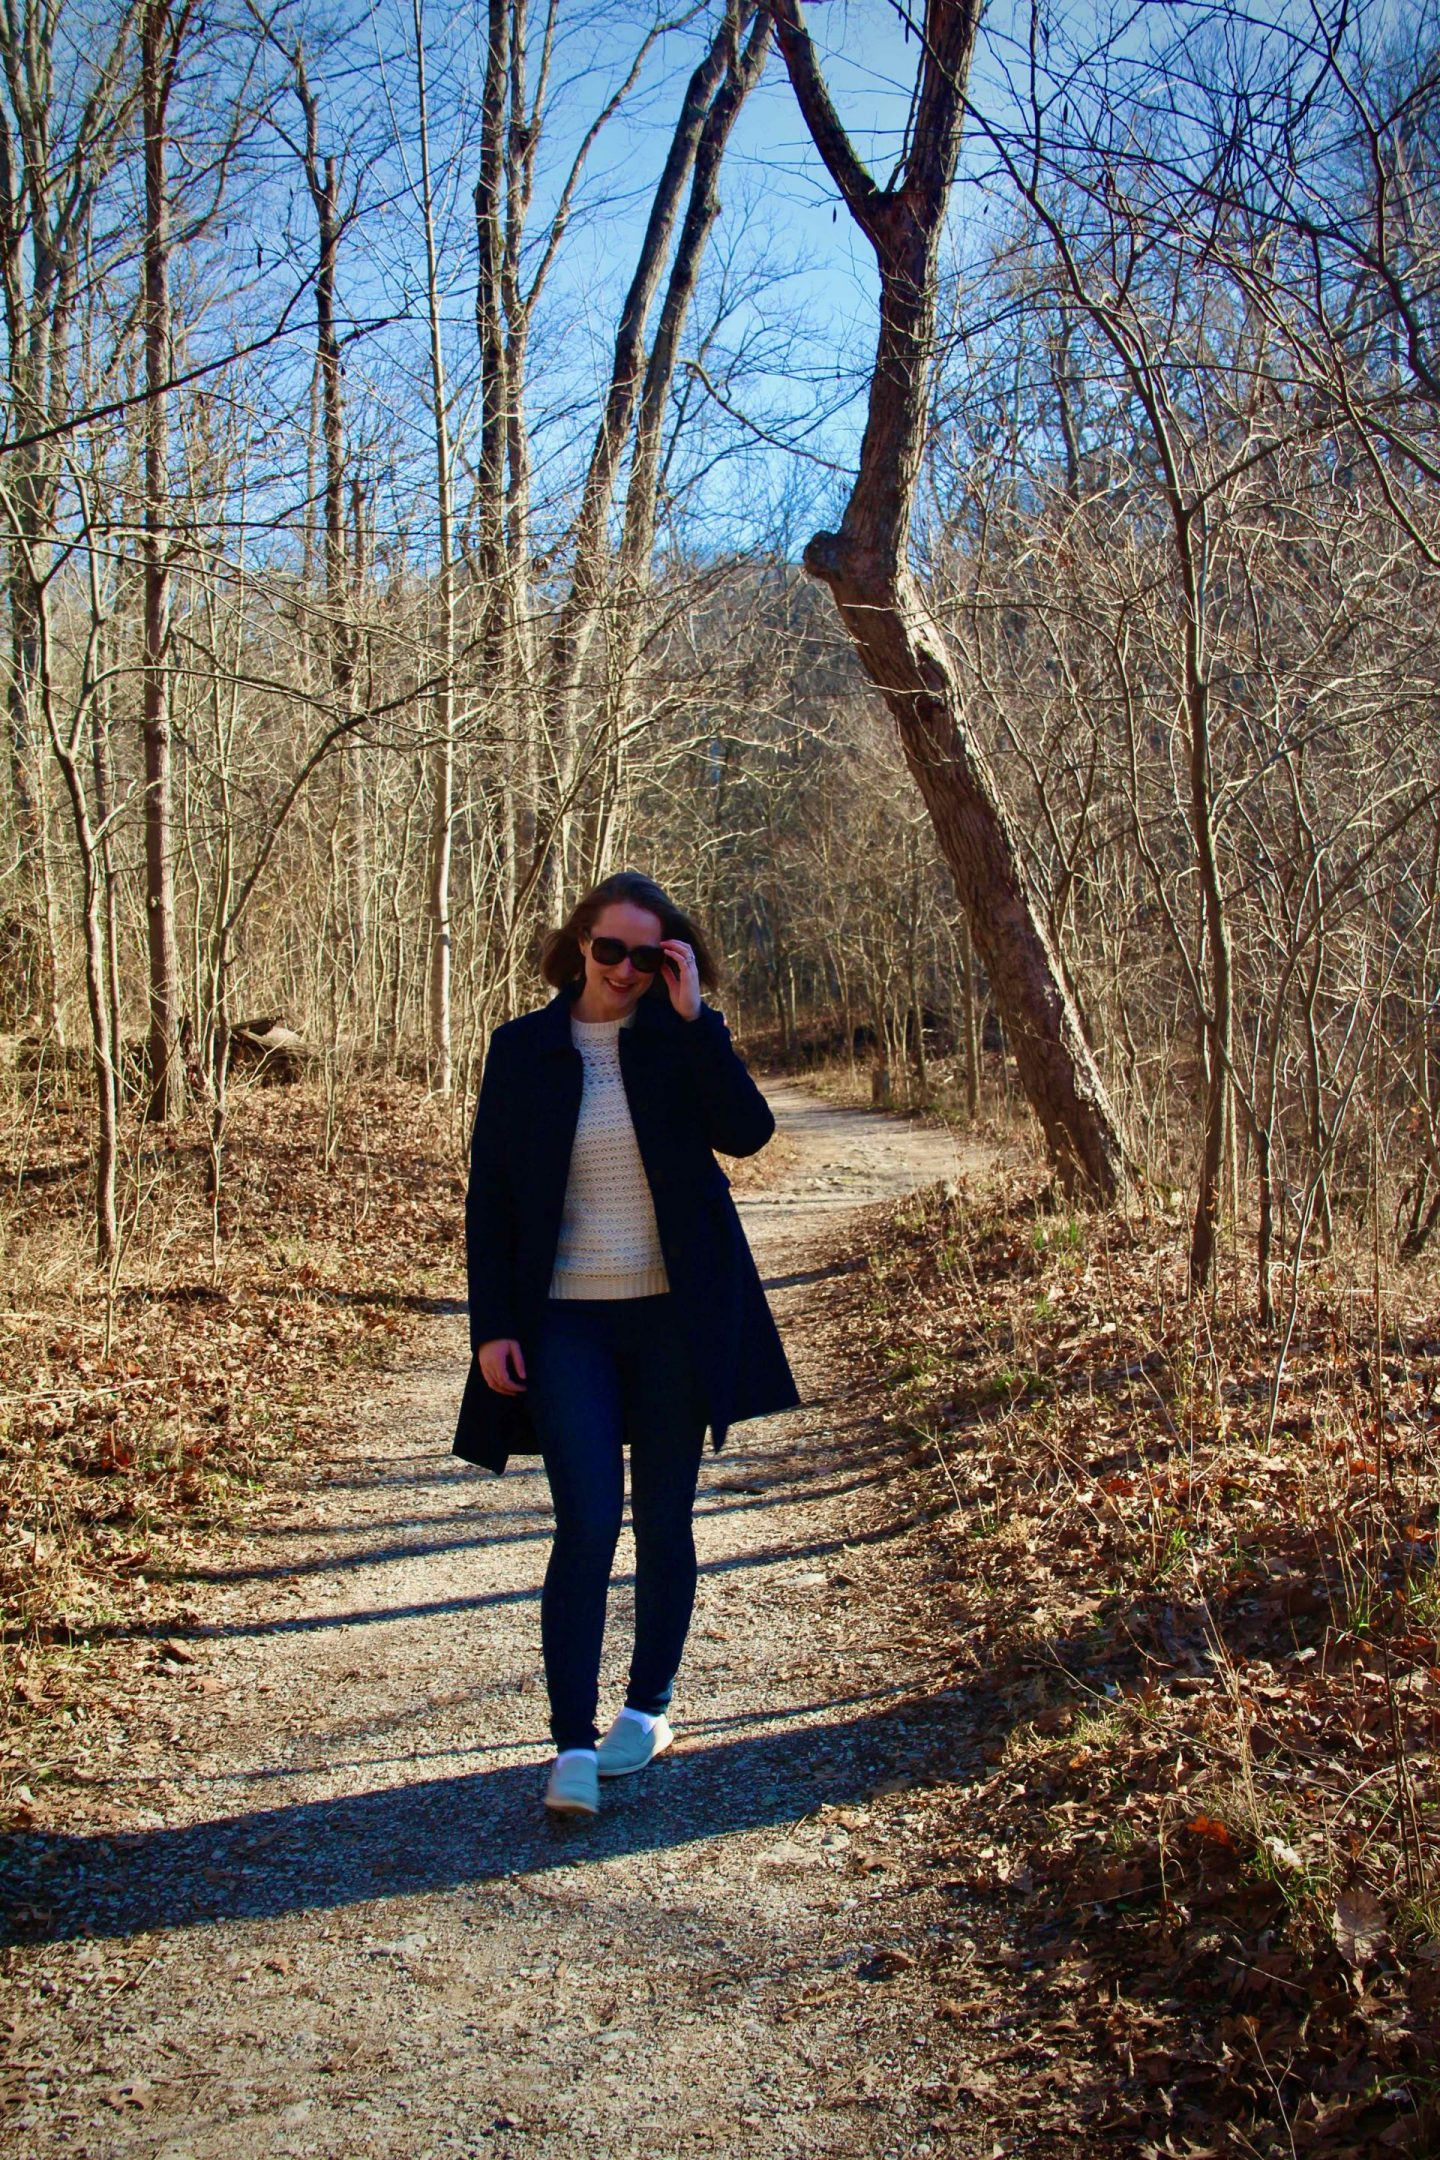 Everyday Adventure in Cincinnati | Walks through Sharon Woods | The Spectacular Adventurer